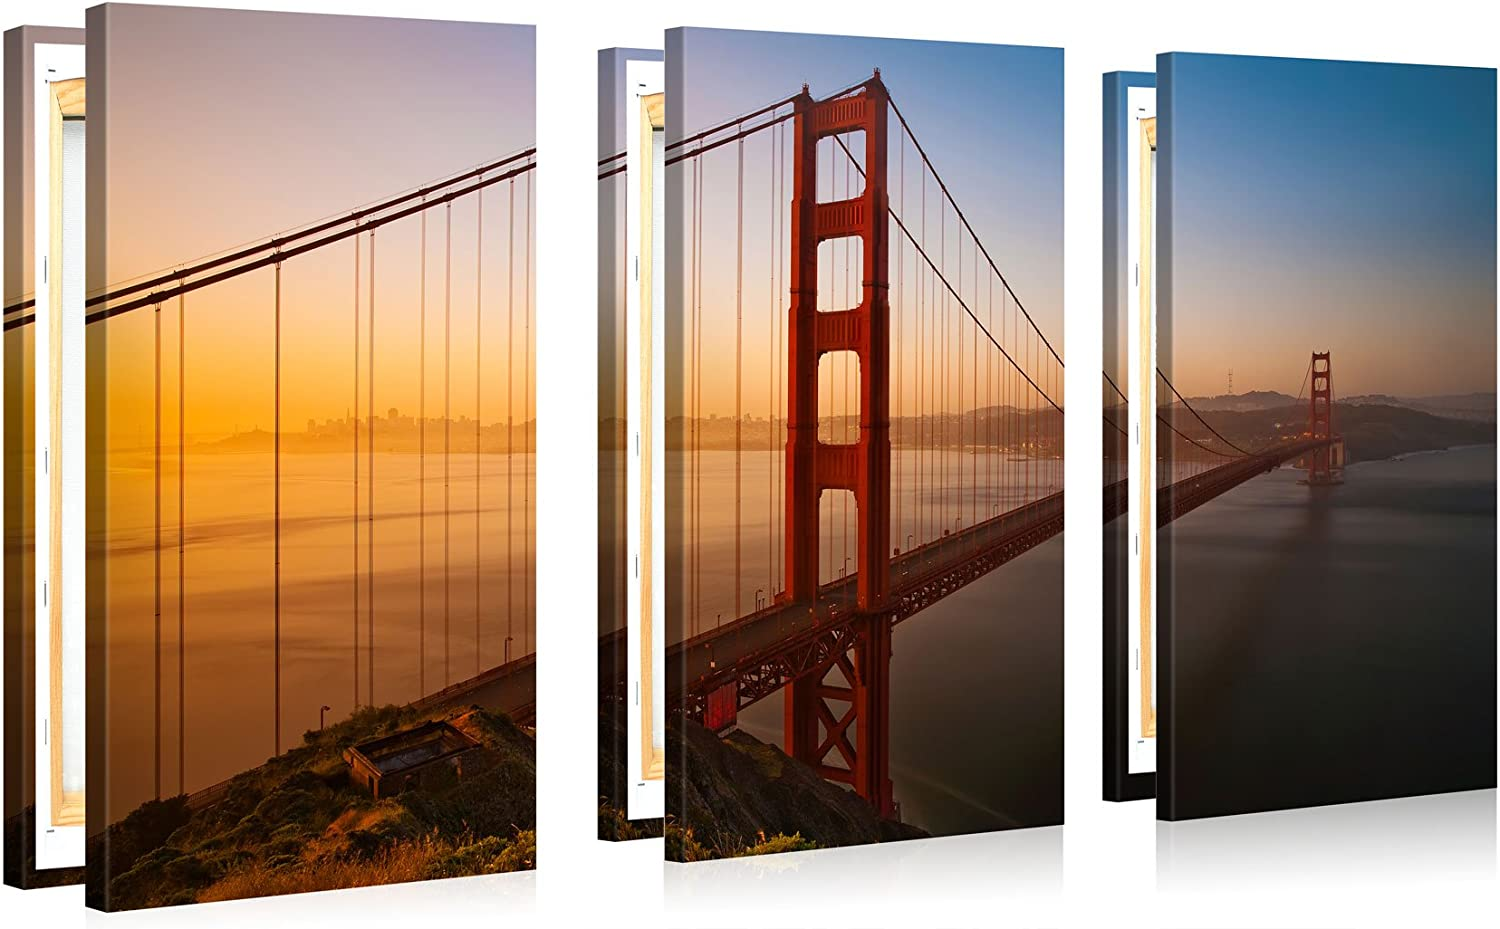 Very Artistic Large Canvas Print Wall Art Golden Gate Bridge 48x30 In 3 Pcs San Francisco Cityscape Canvas Picture Stretched On Wooden Frame Giclee Canvas Printing Hanging